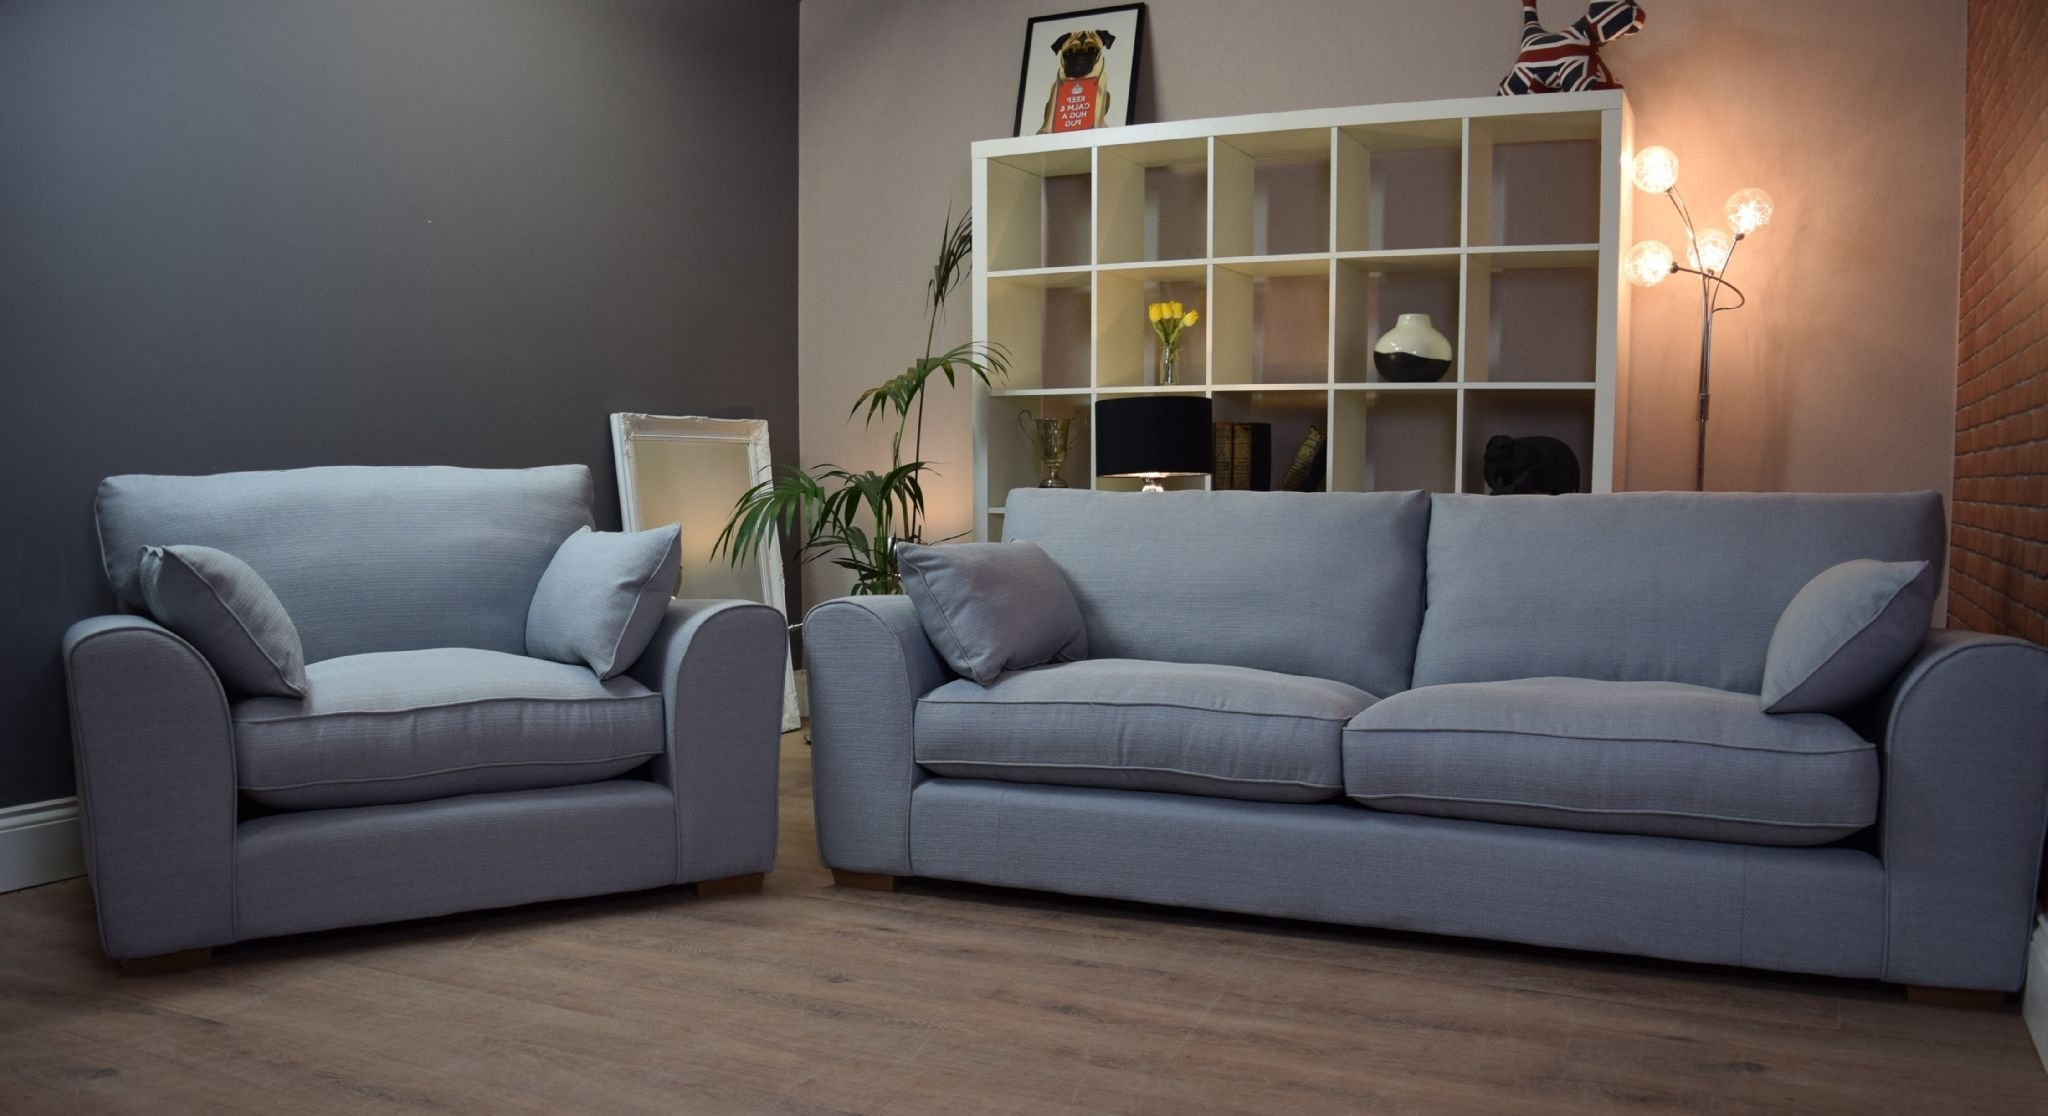 Most Popular Set New Ashdown 3 Seater Sofa & Cuddle Chair Set – Duck Egg Blue Intended For 3 Seater Sofas And Cuddle Chairs (View 13 of 20)